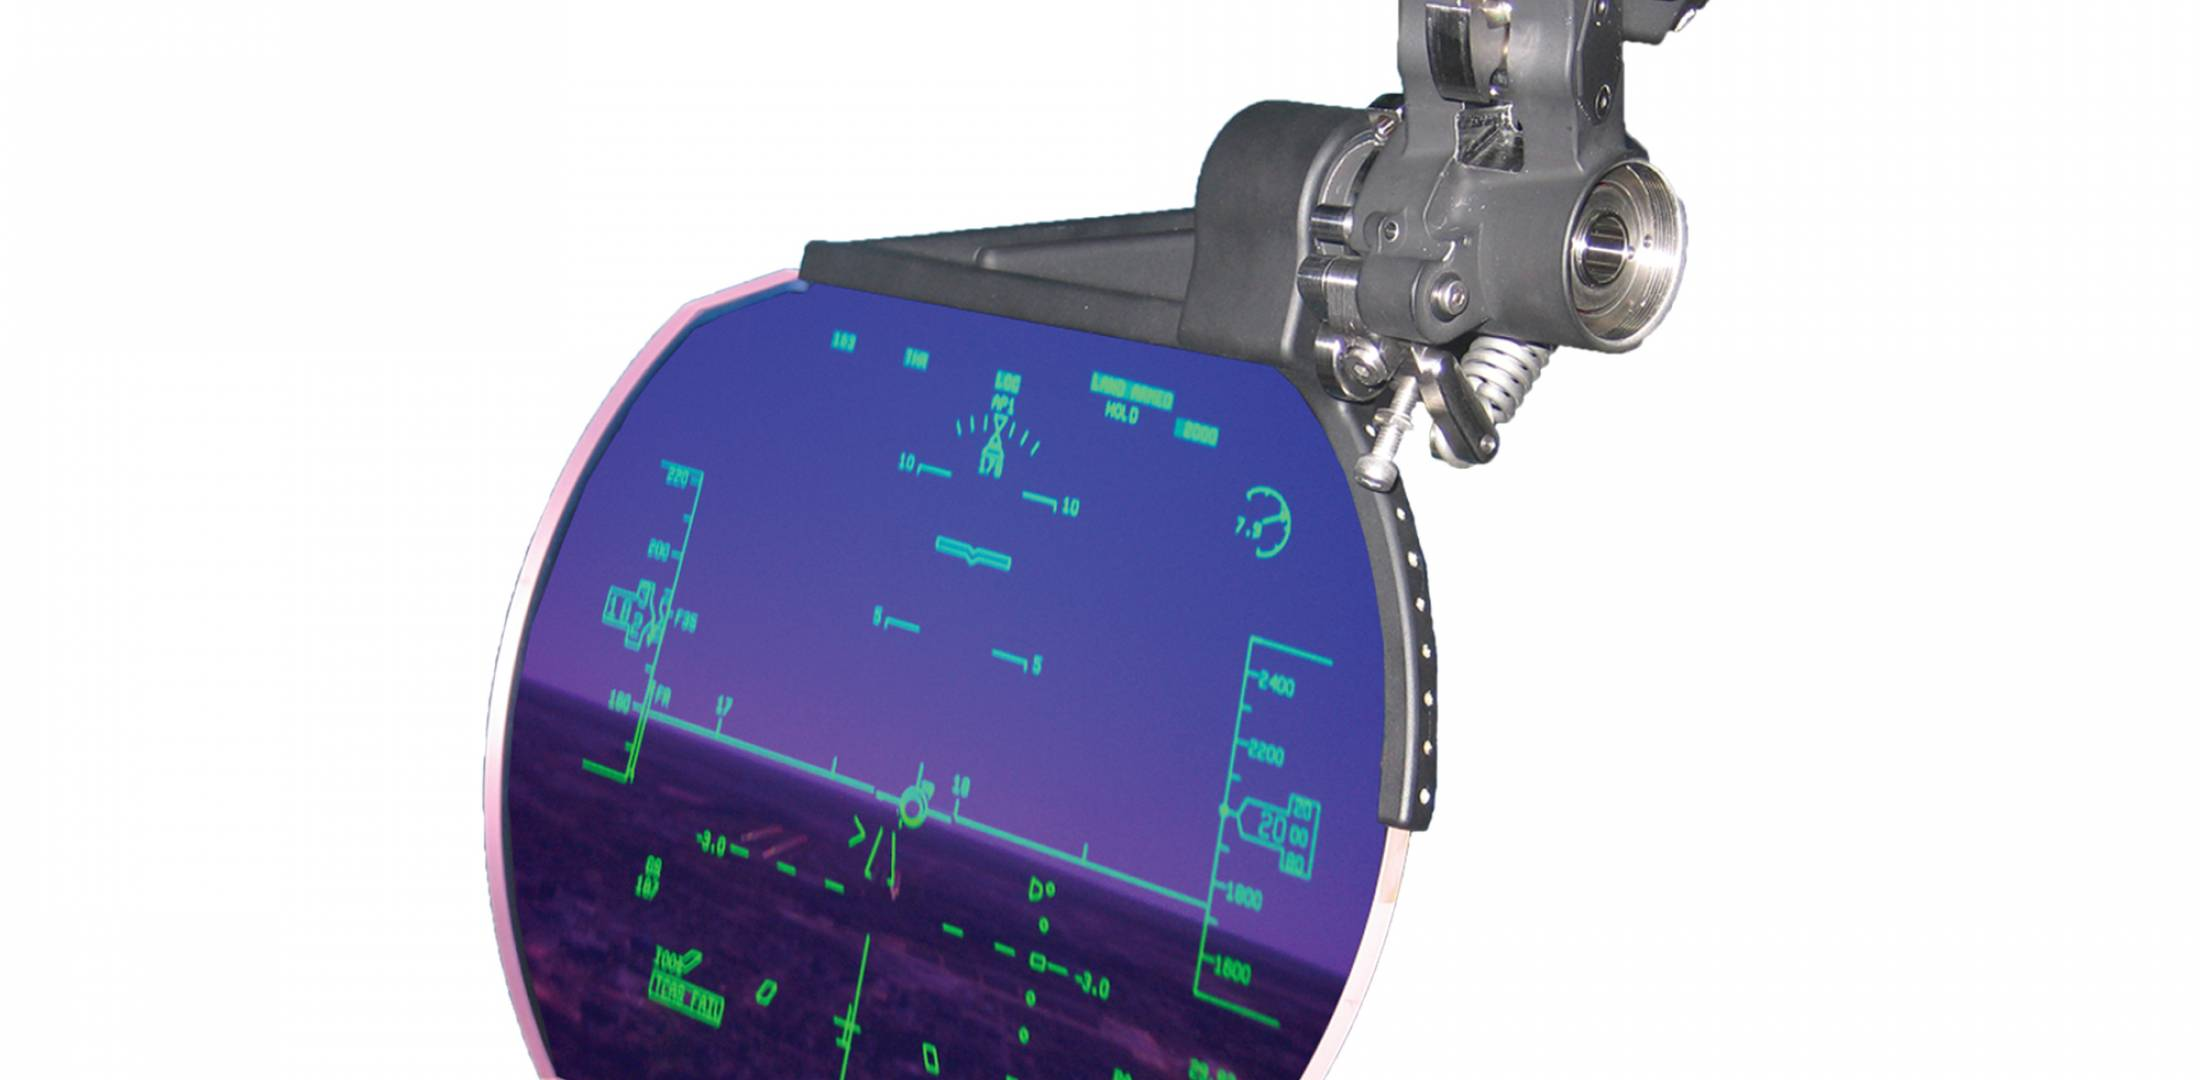 Jetcraft's Avionics Systems recently received an  STC for aftermarket installation of Elbit-Kollsman's  AT-HUD advanced technology head-up display.